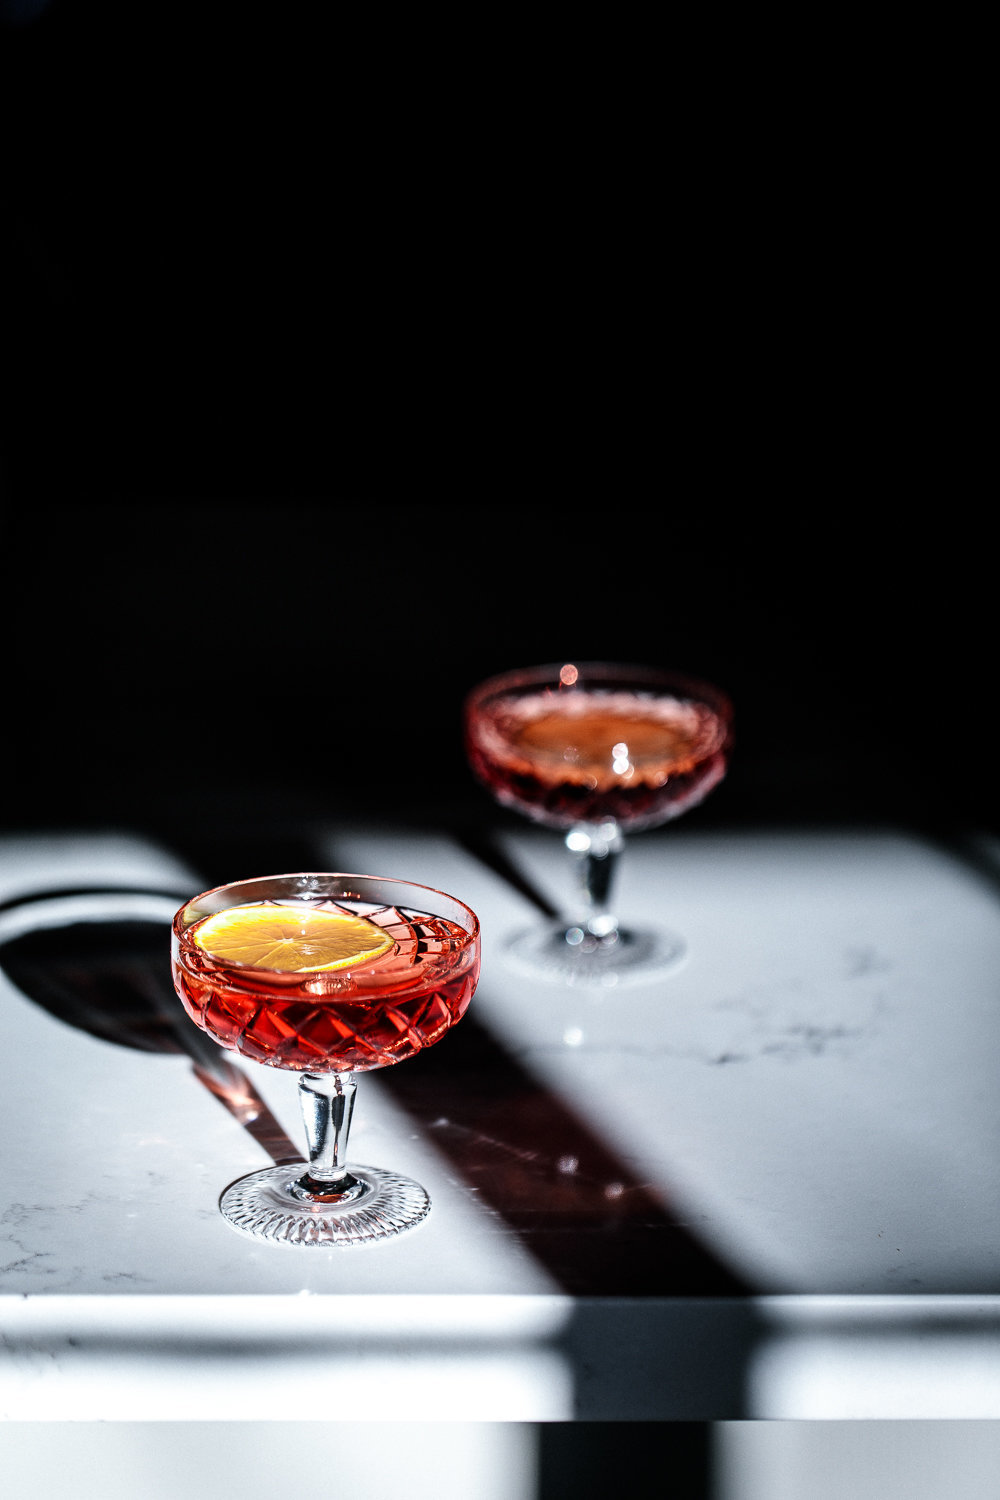 Negroni Shadow Play - Anisa Sabet - The Macadames - Food Travel Lifestyle Photographer-51